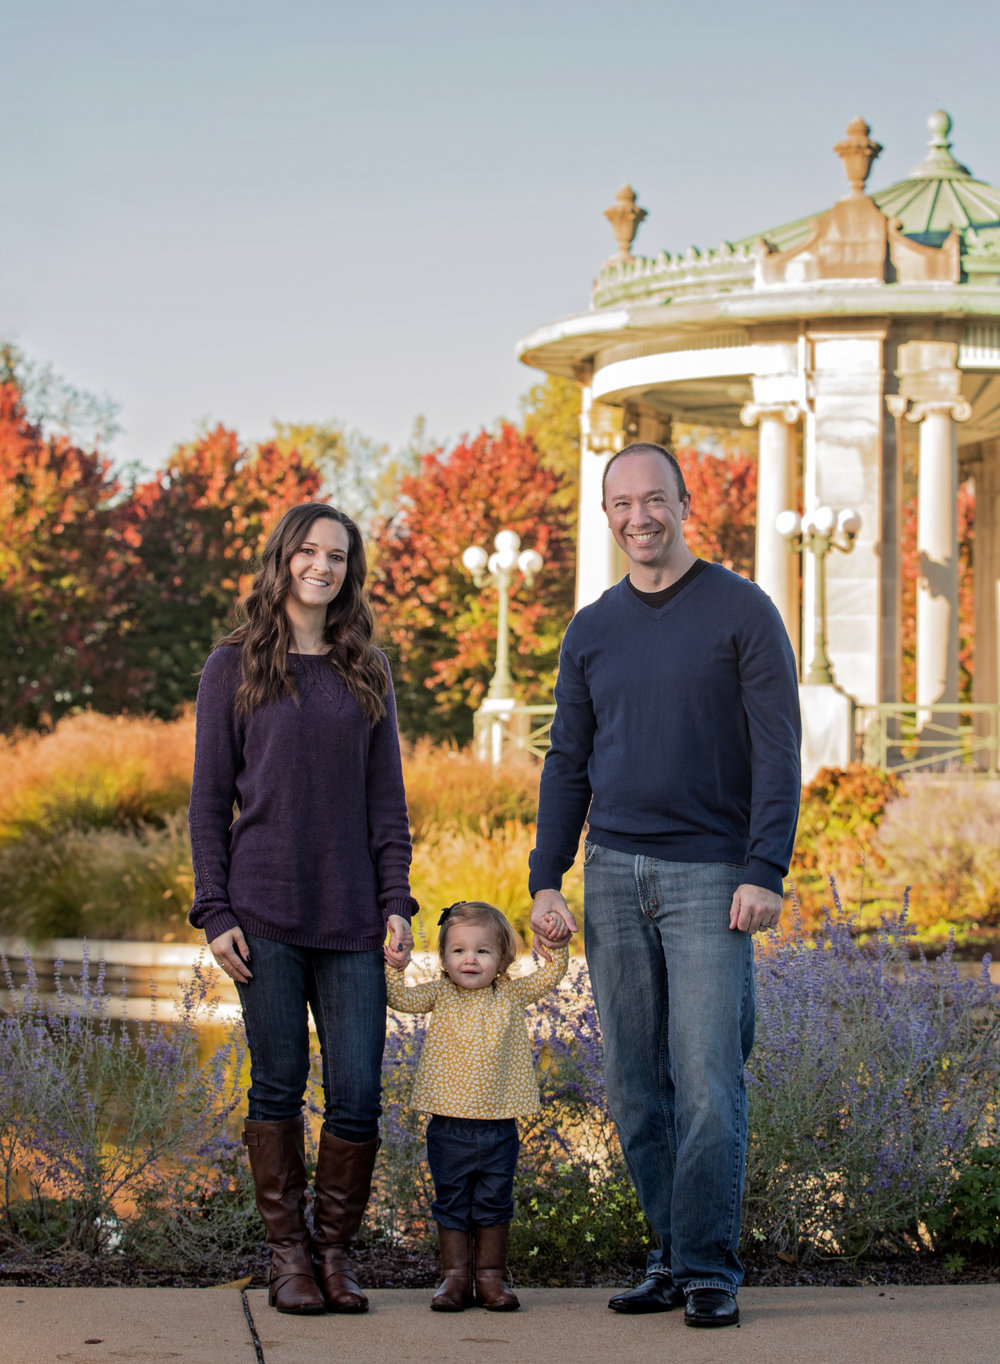 Family Photography St. Louis Photographer.jpg